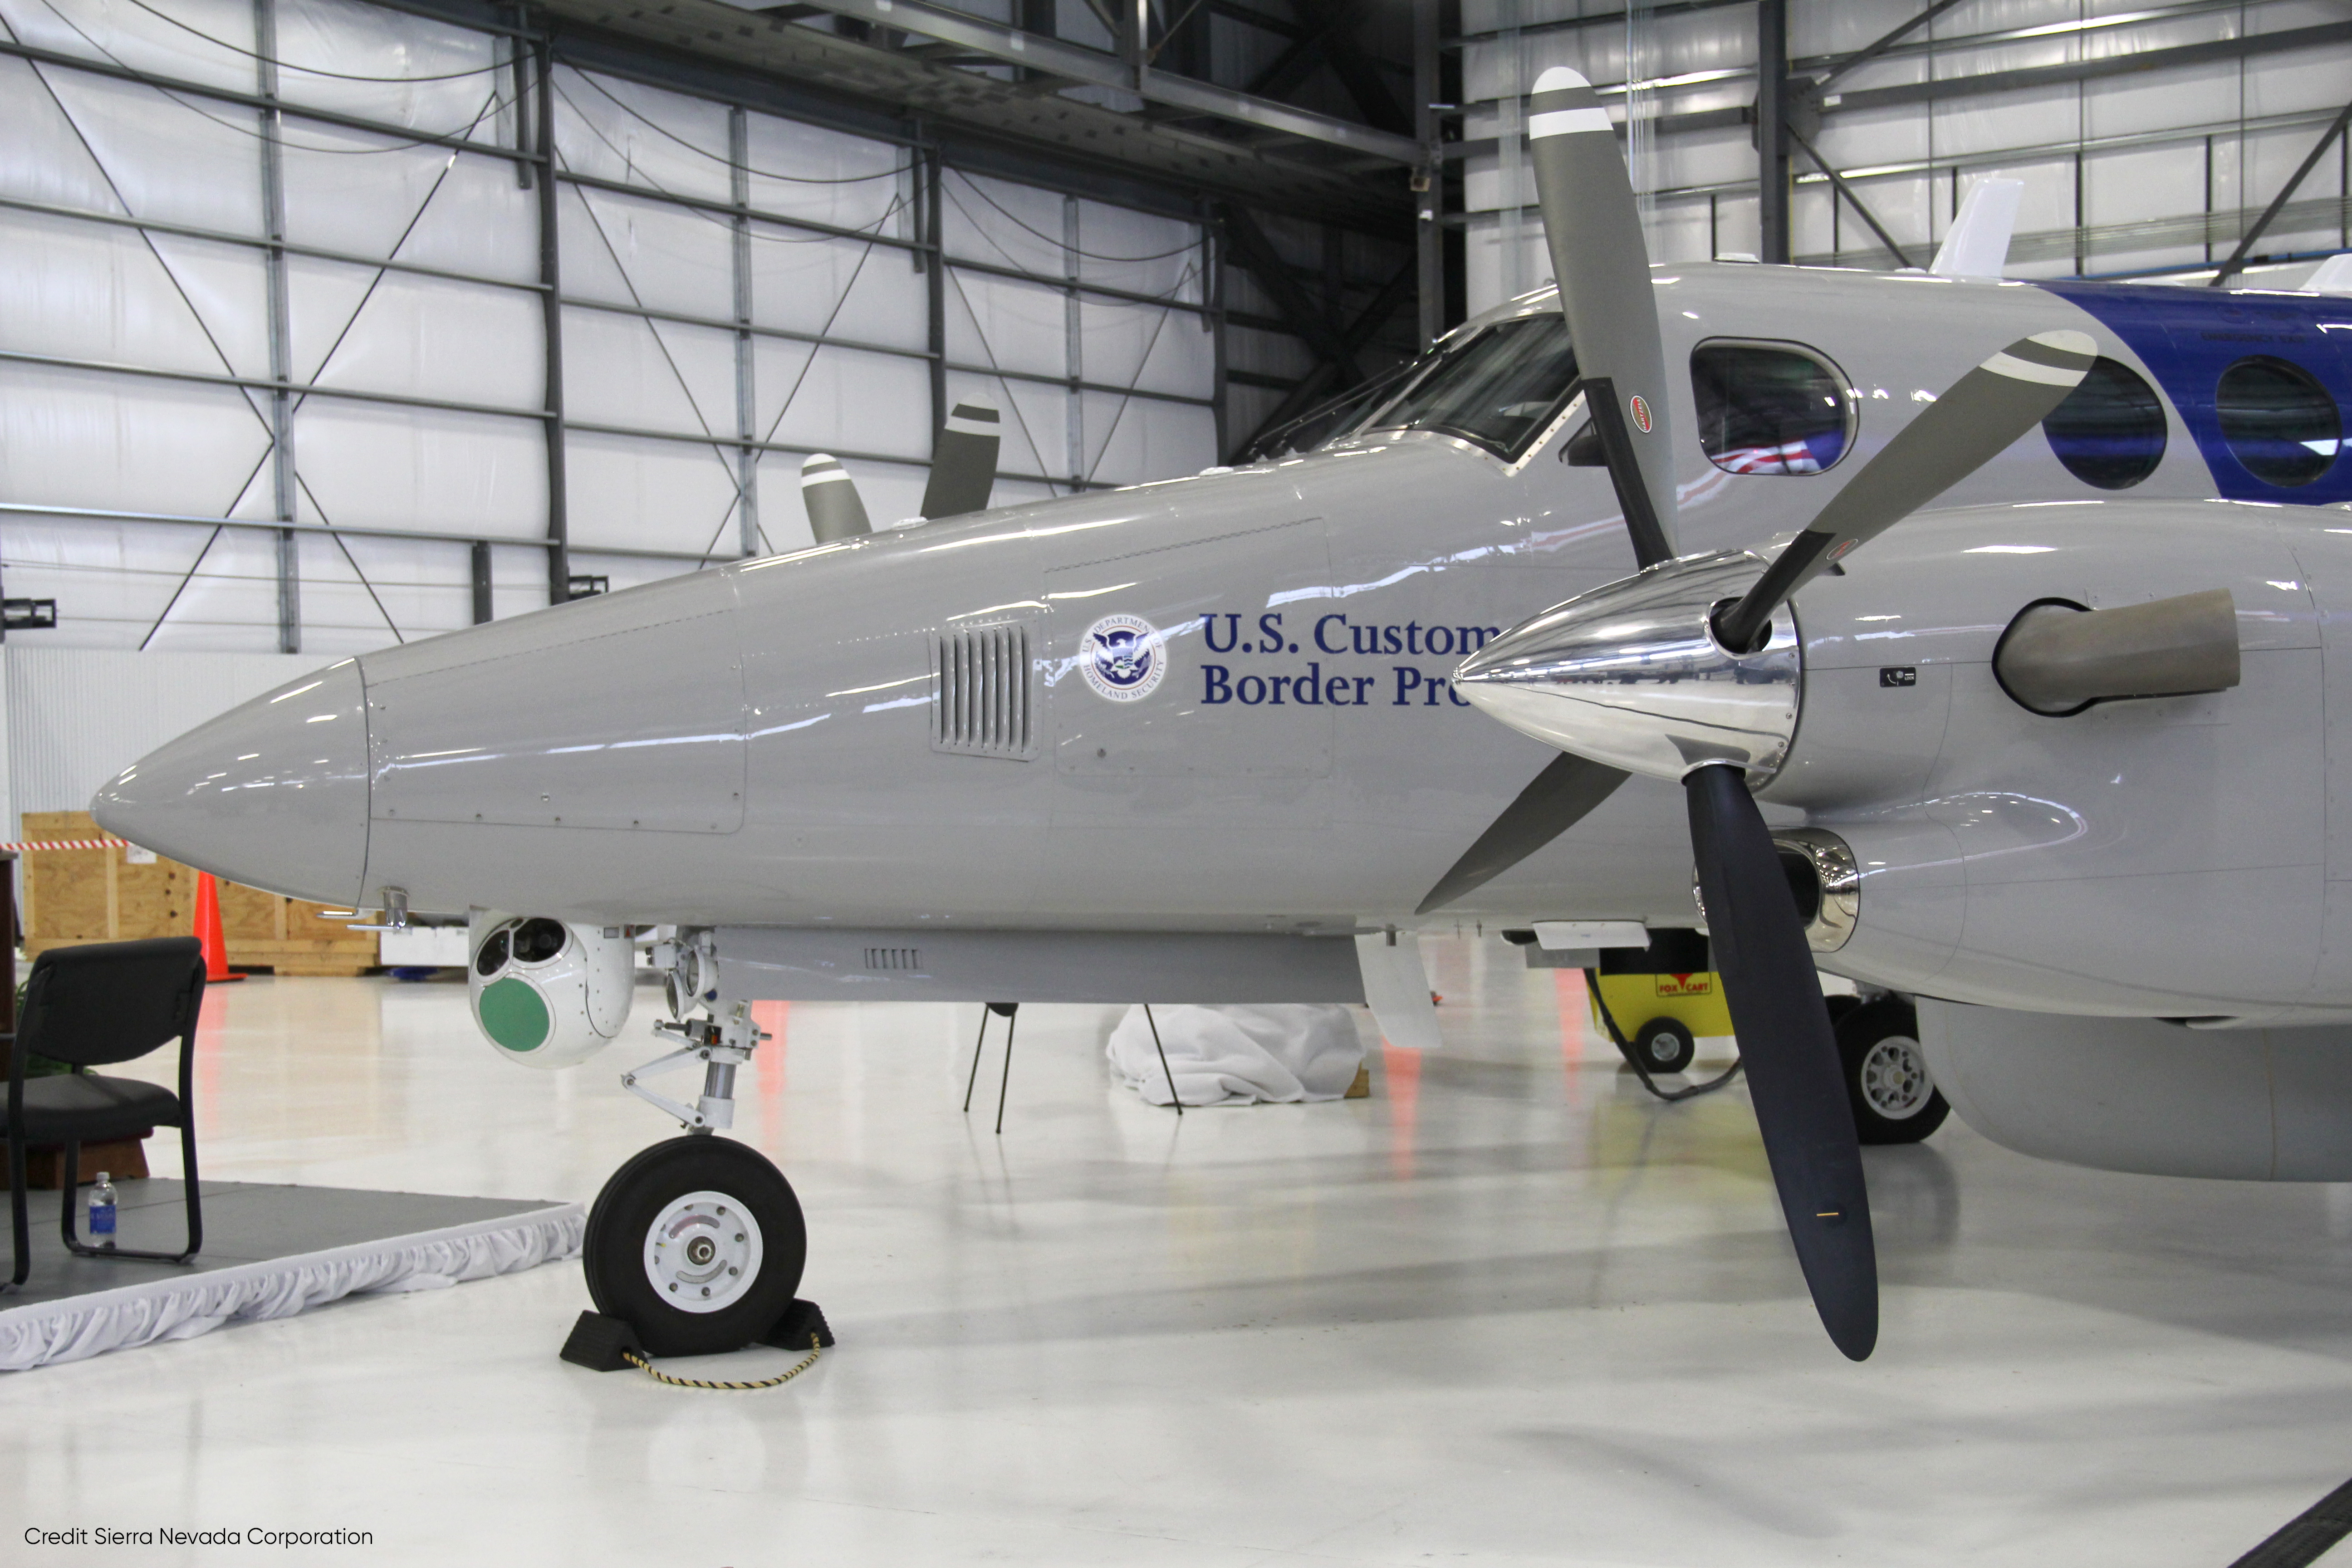 CBP Multi-role Enforcement Aircraft in Hangar - Sierra Nevada Corporation